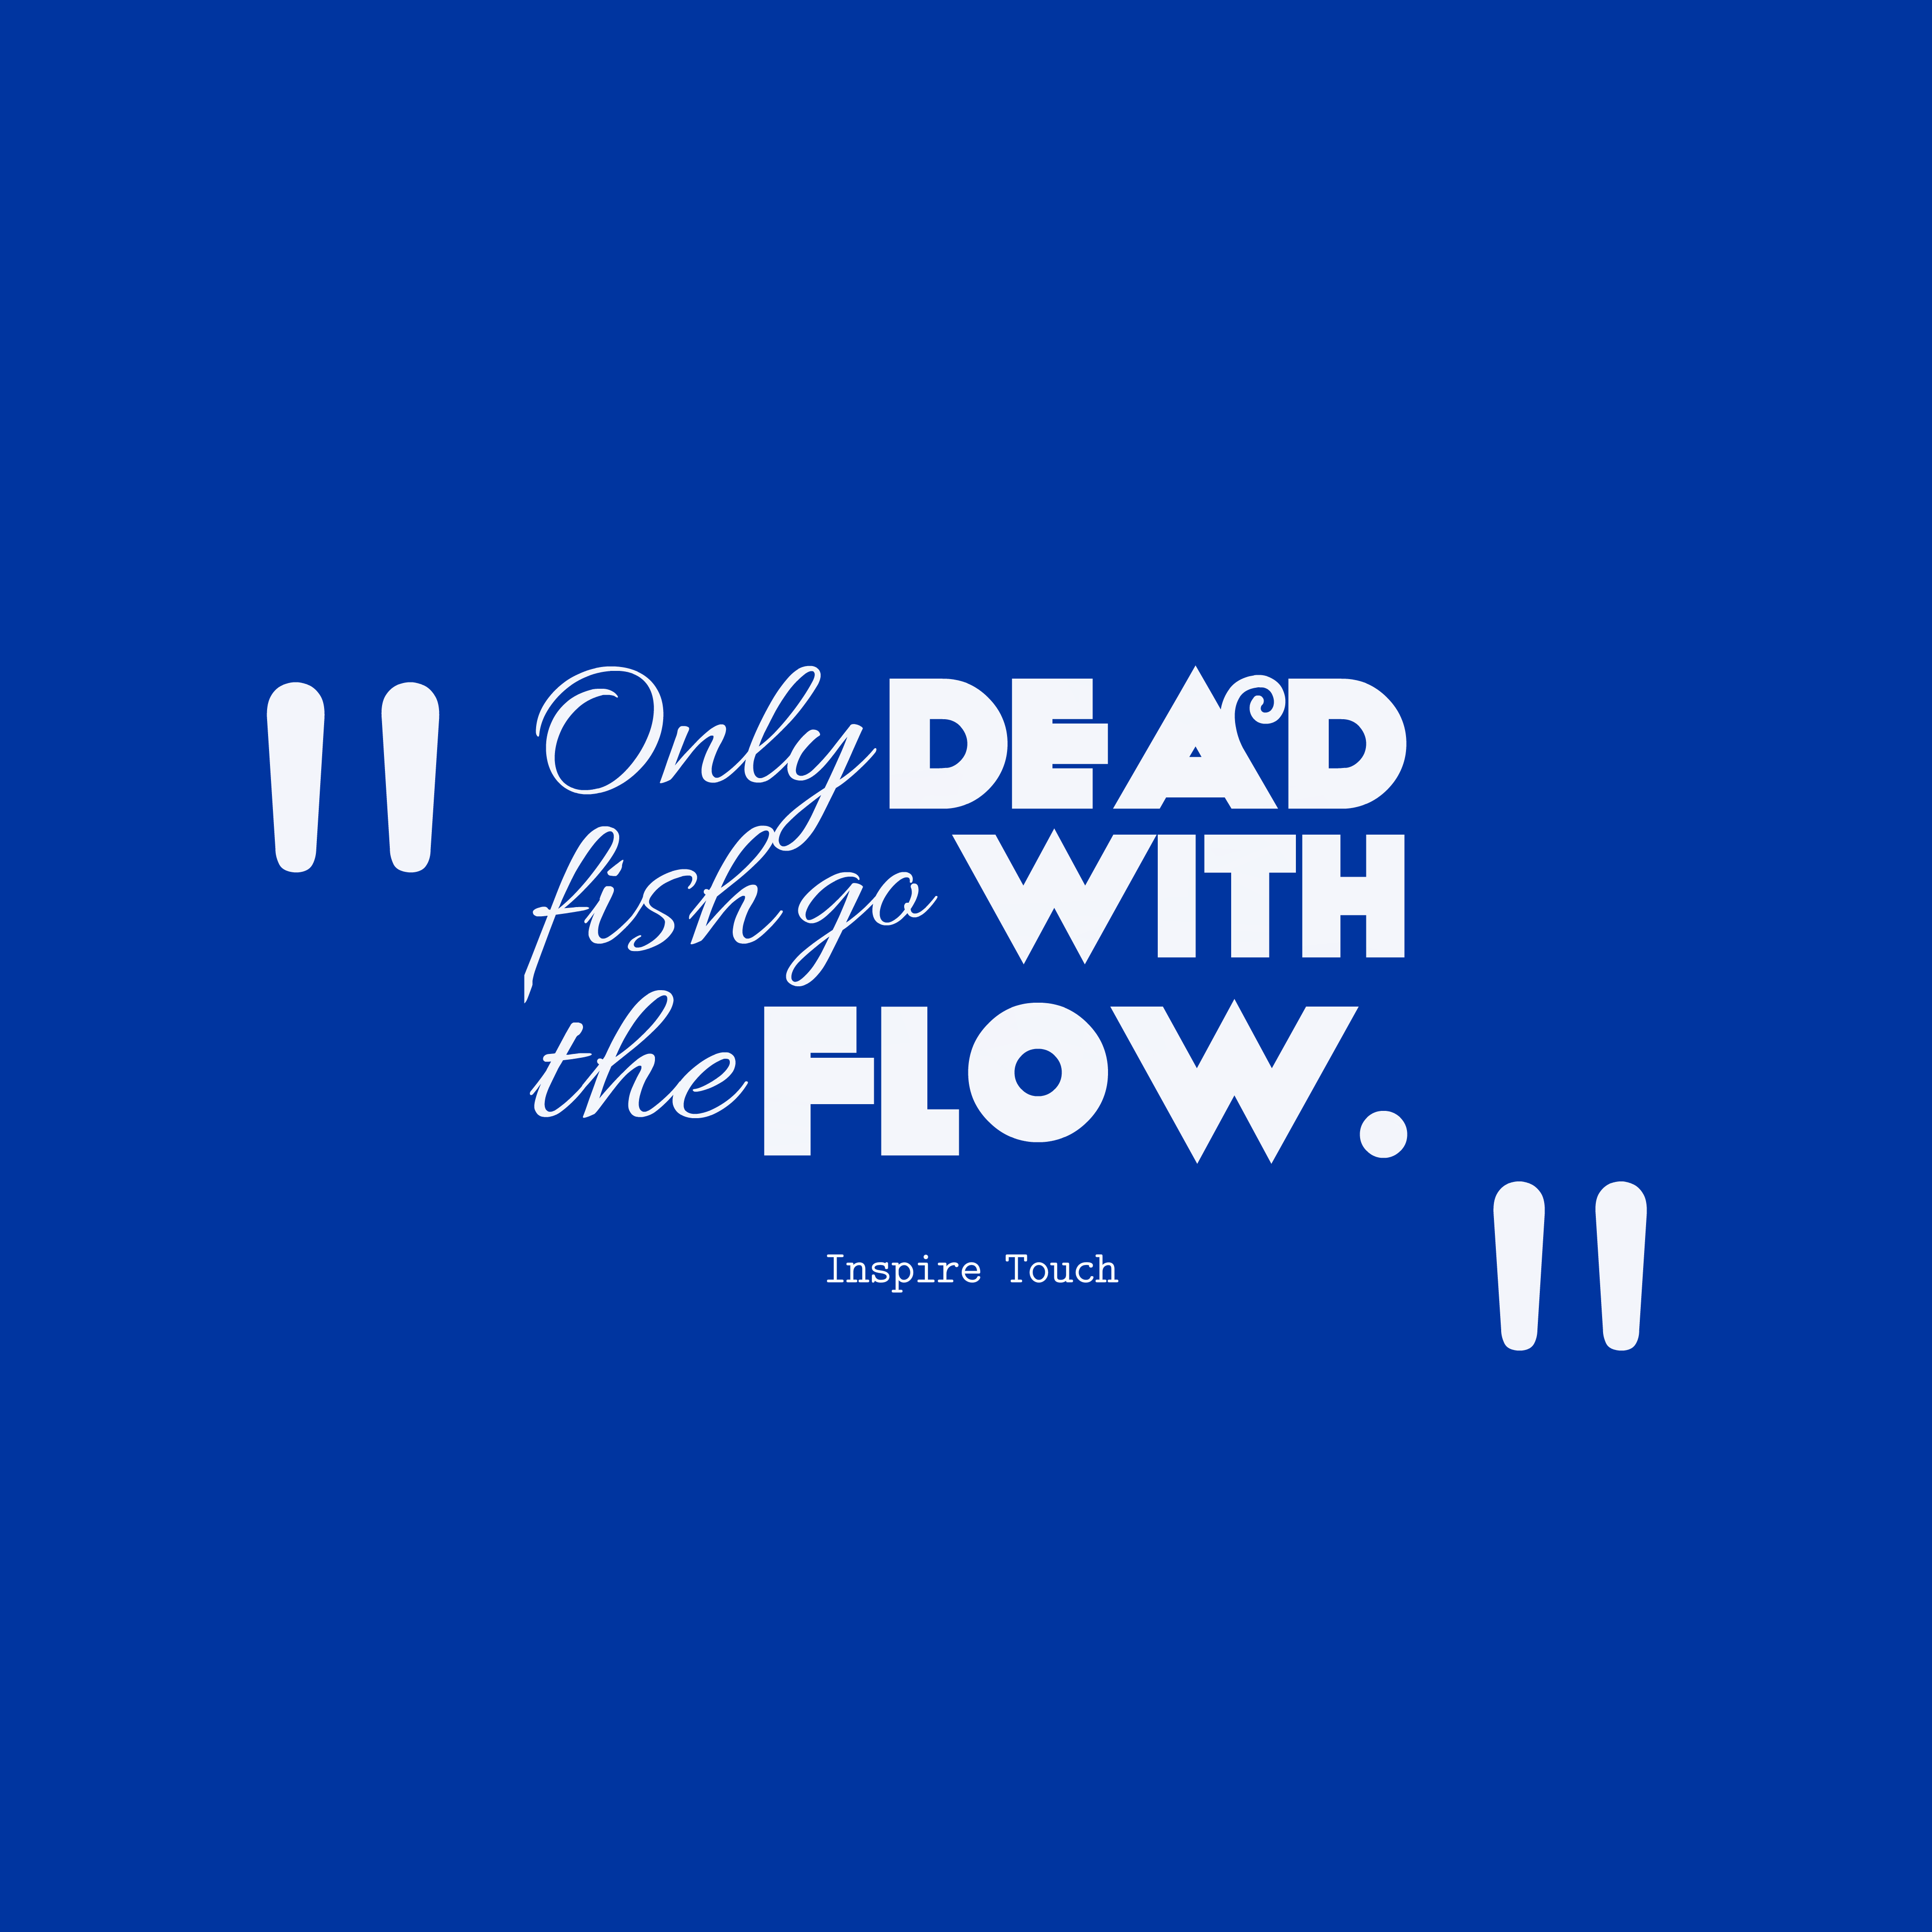 Quotes image of Only dead fish go with the flow.